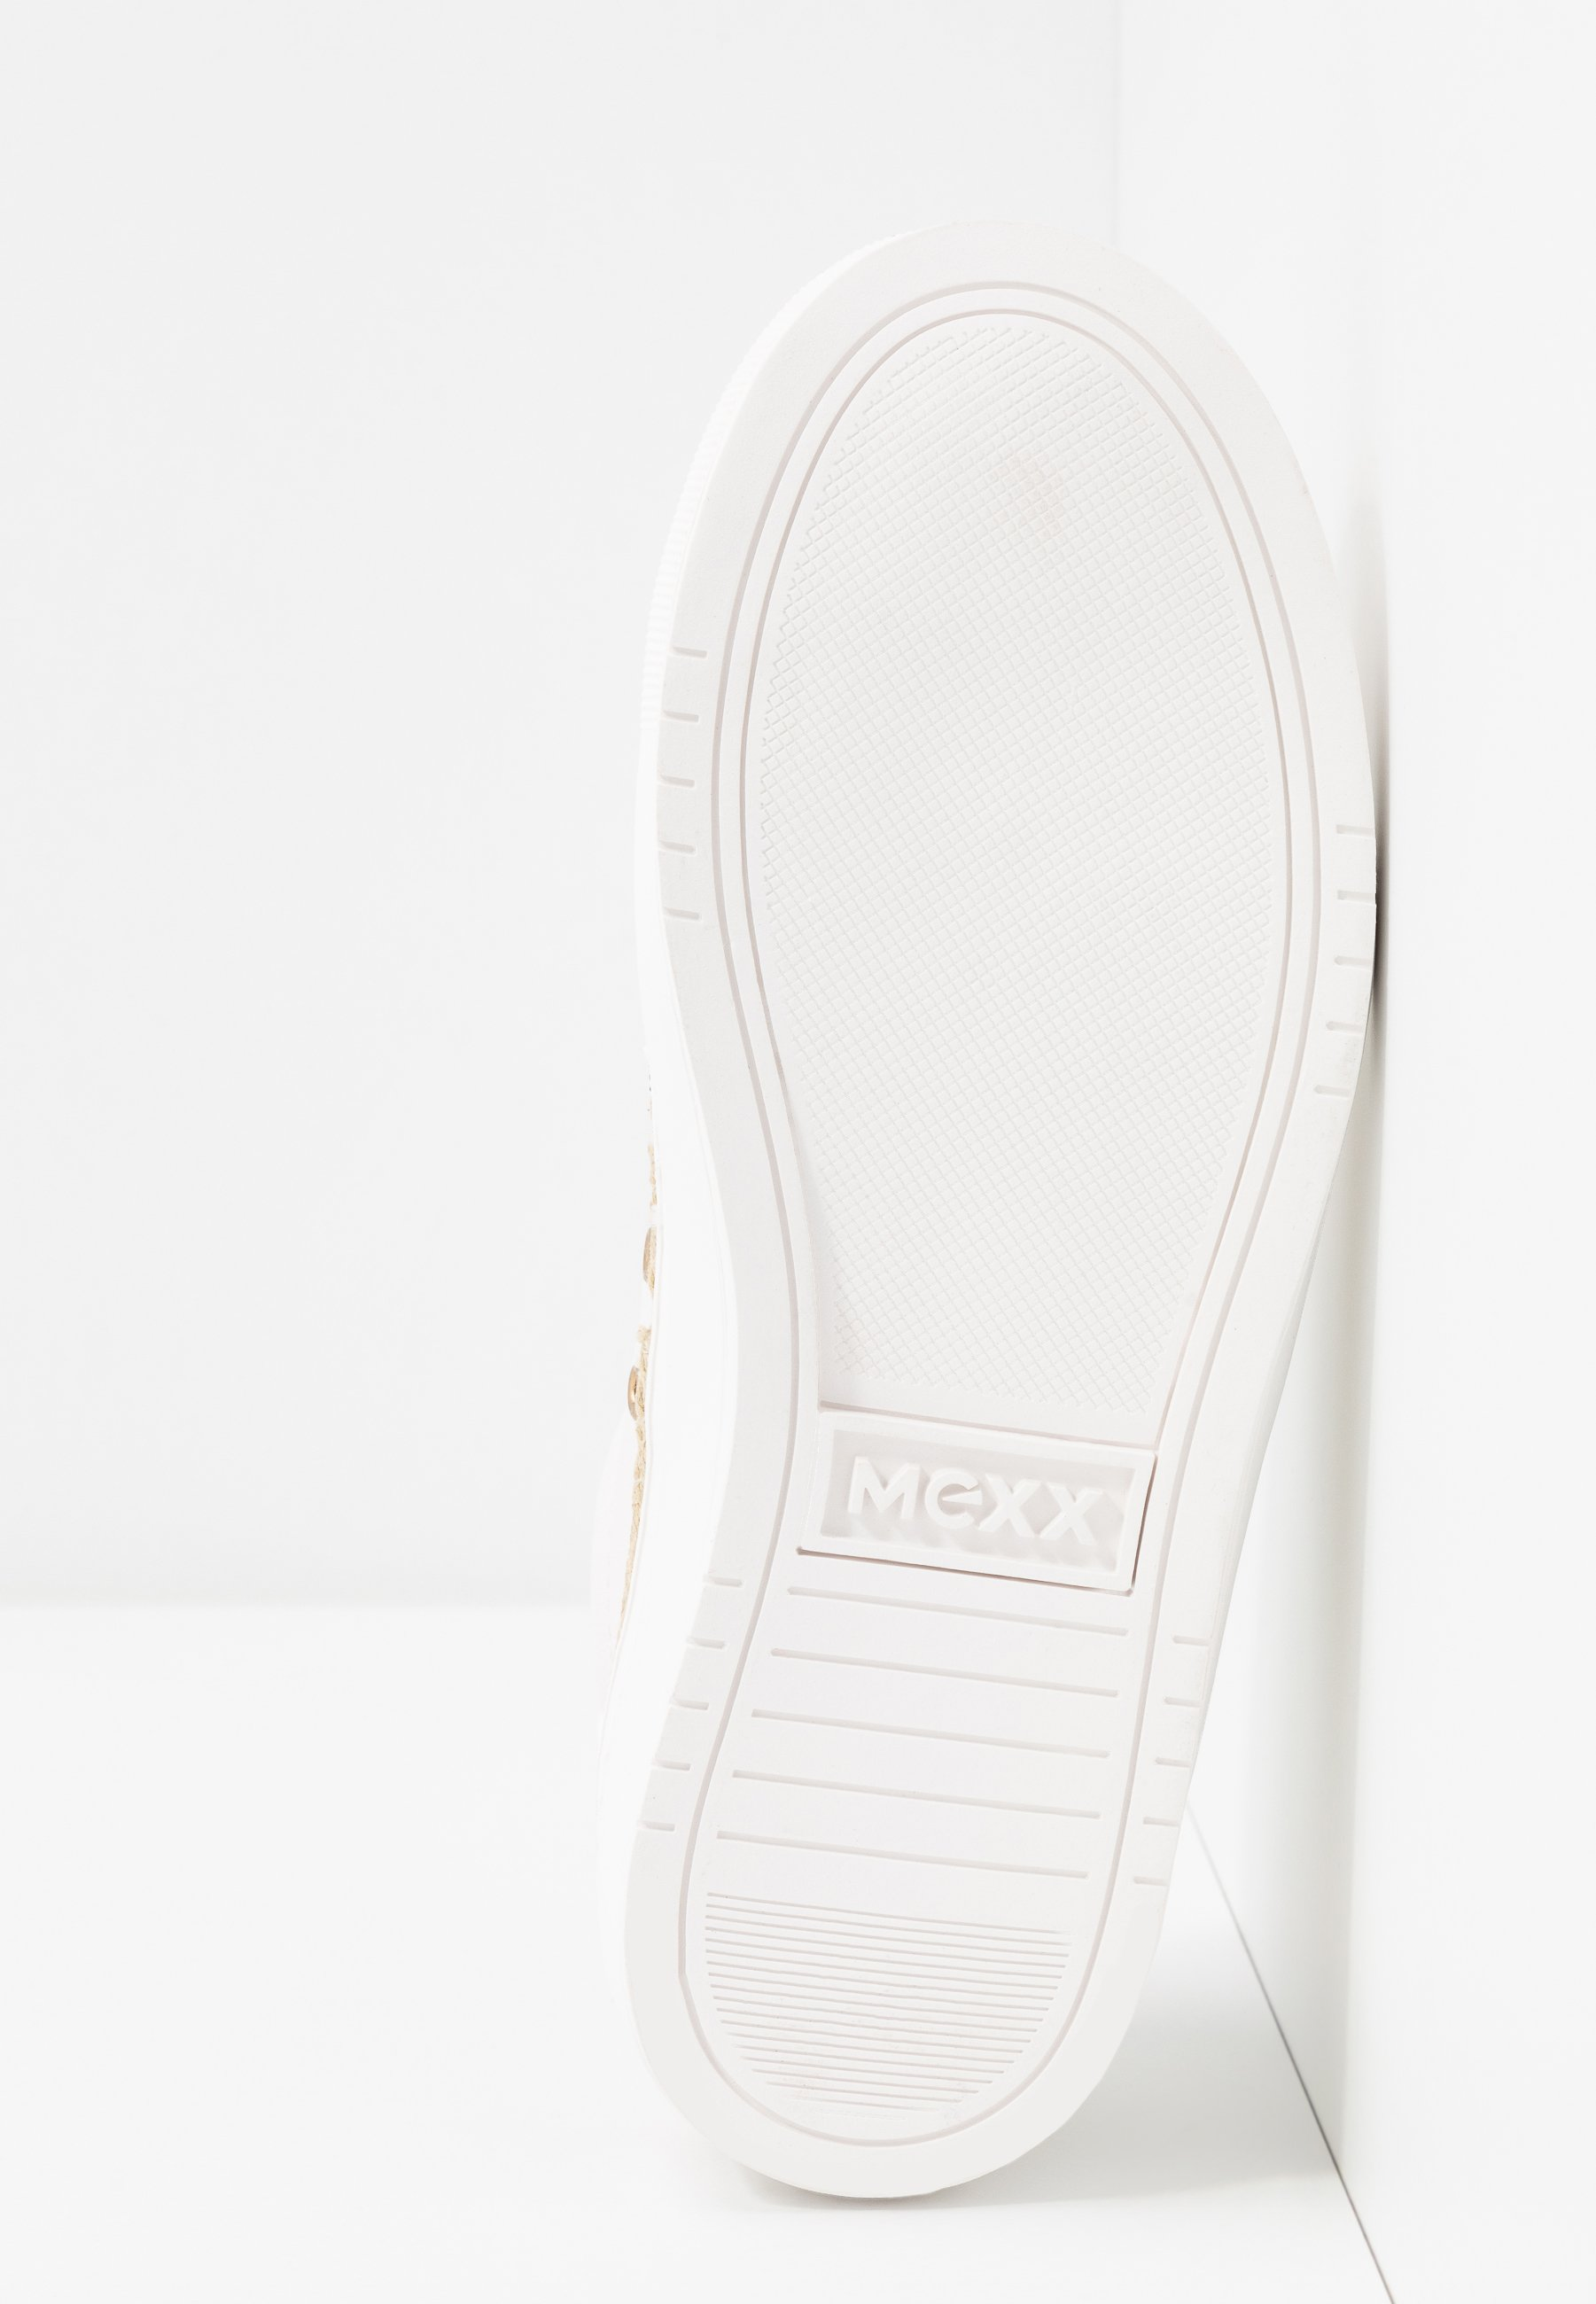 Mexx Cis - Sneakers White